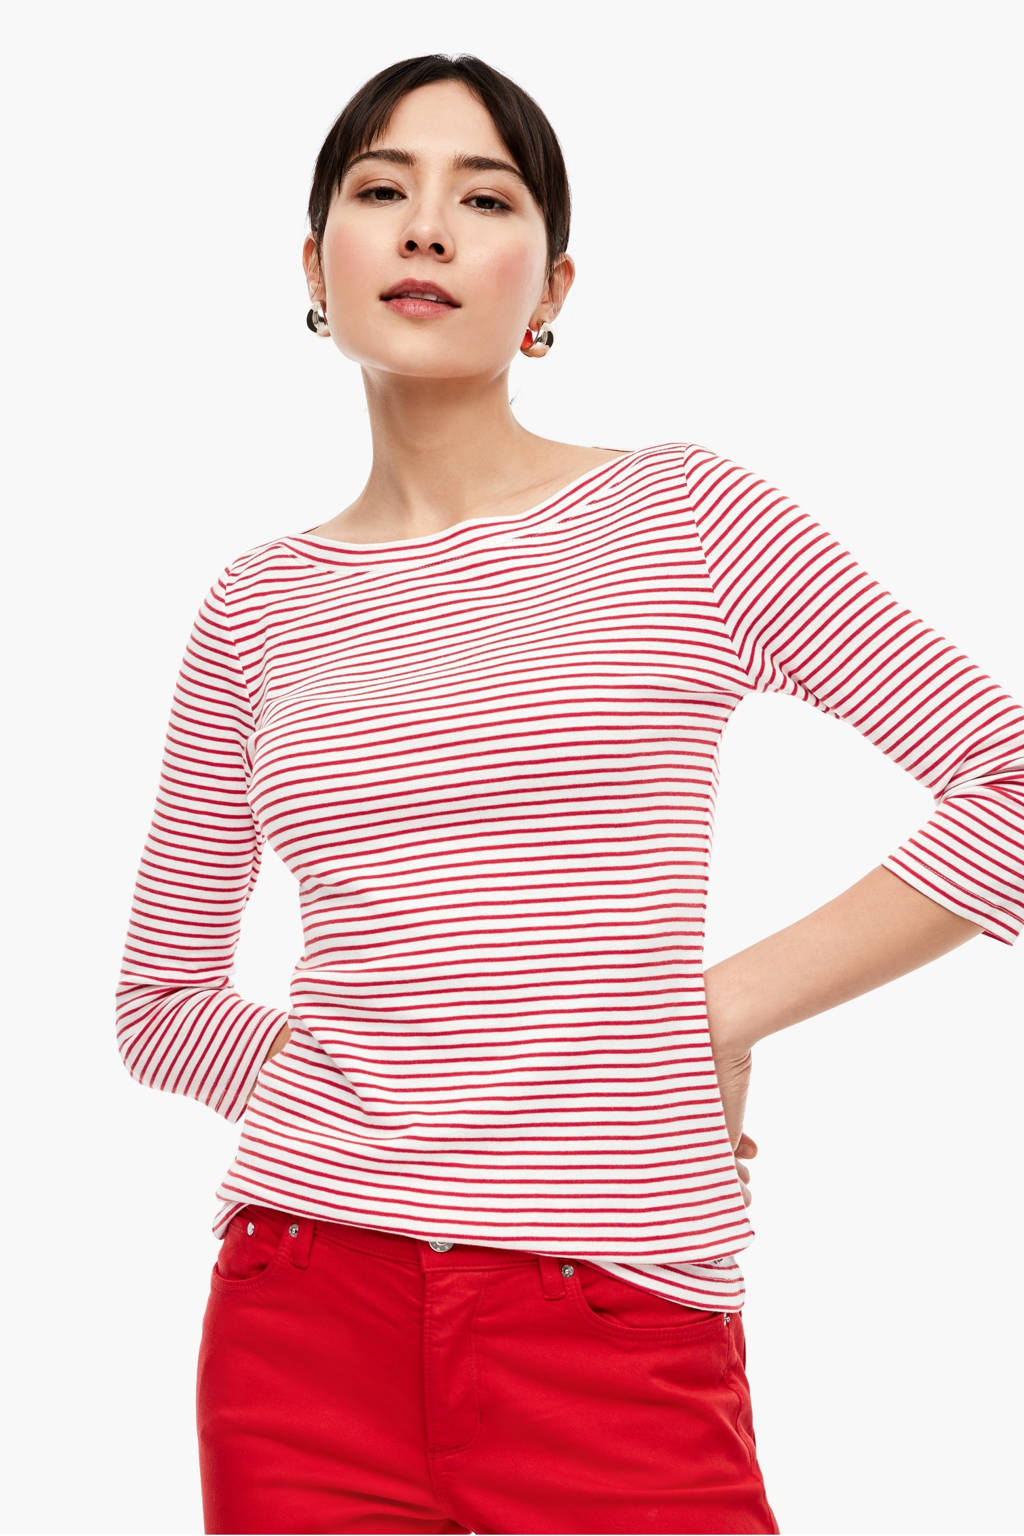 s.Oliver gestreept T-shirt rood/wit, Rood/wit